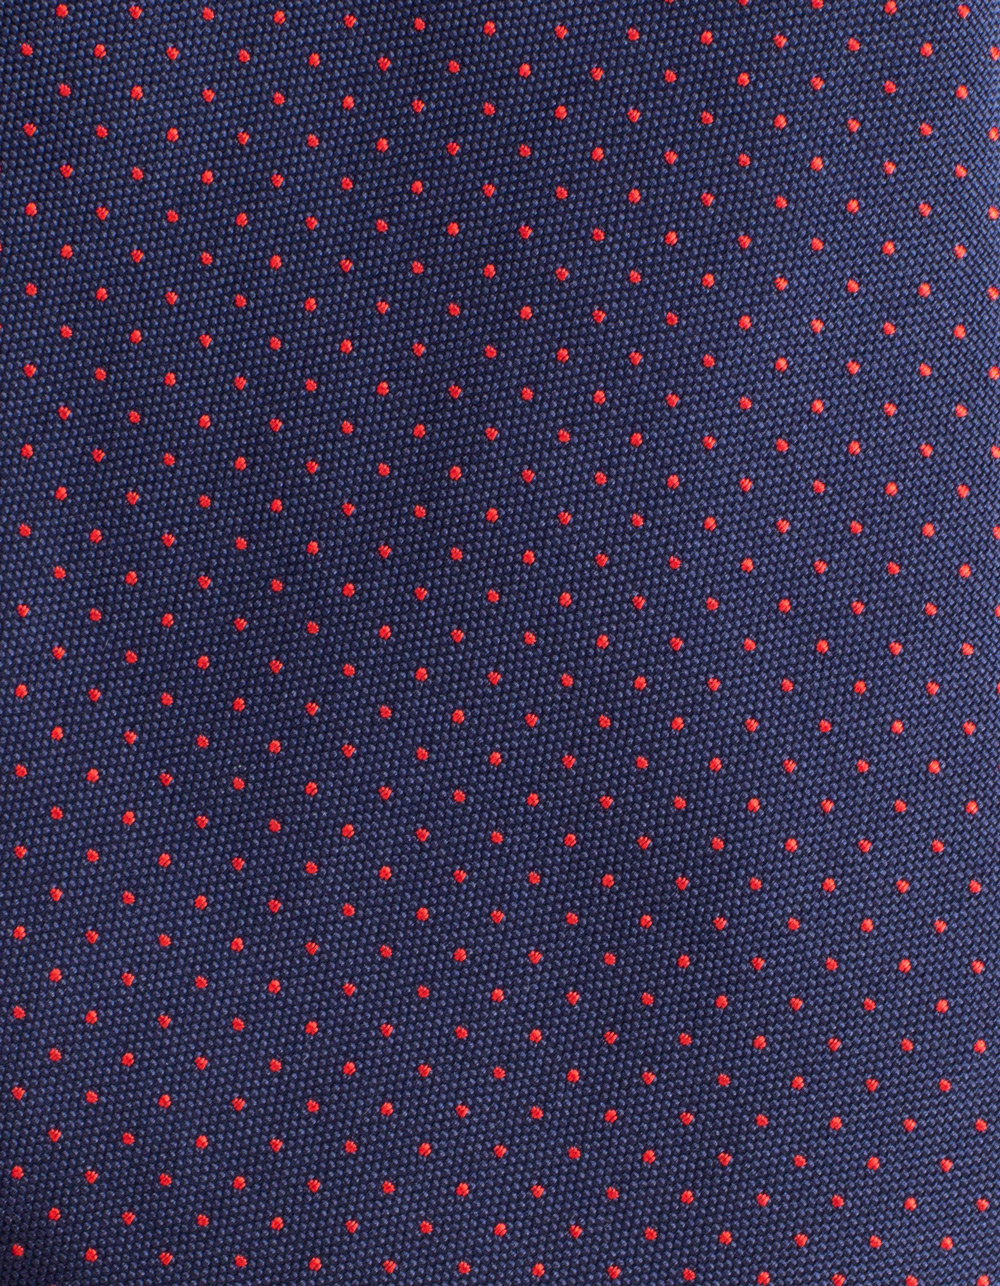 Dark Navy tie with micro polka dots - Backside